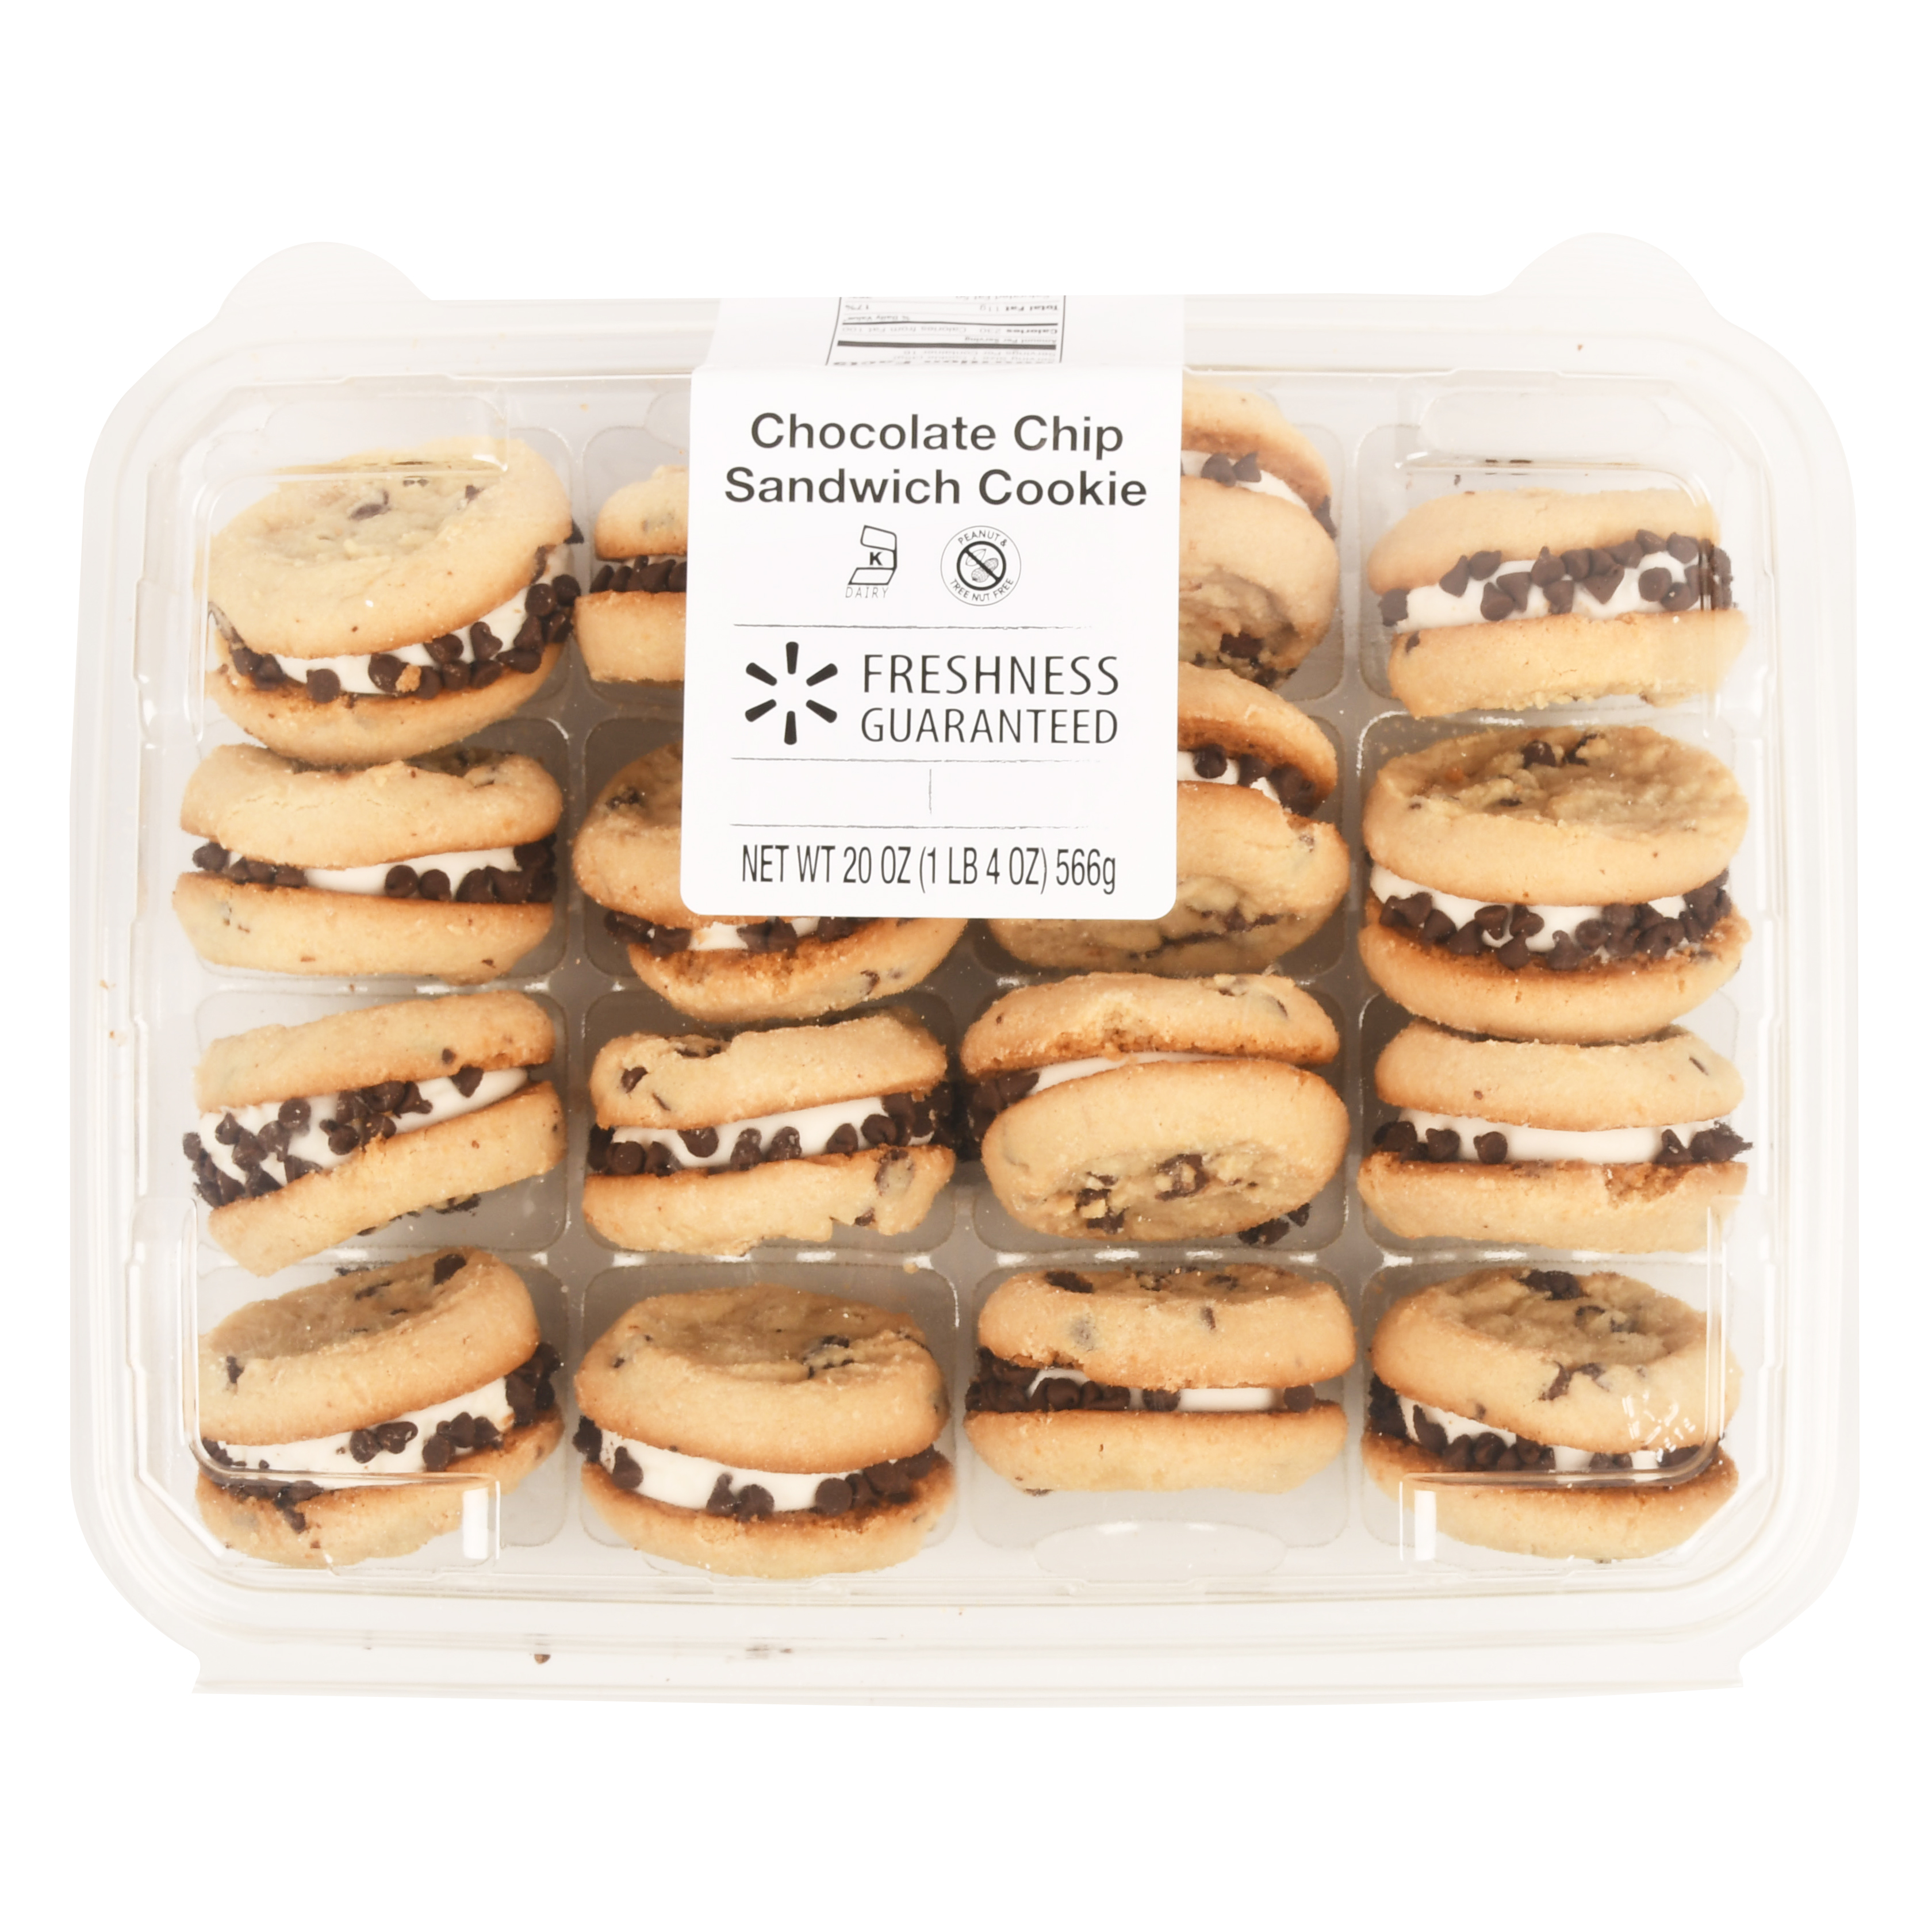 Freshness Guaranteed Chocolate Chip Cookie Sandwich, 20 oz, 16 Count